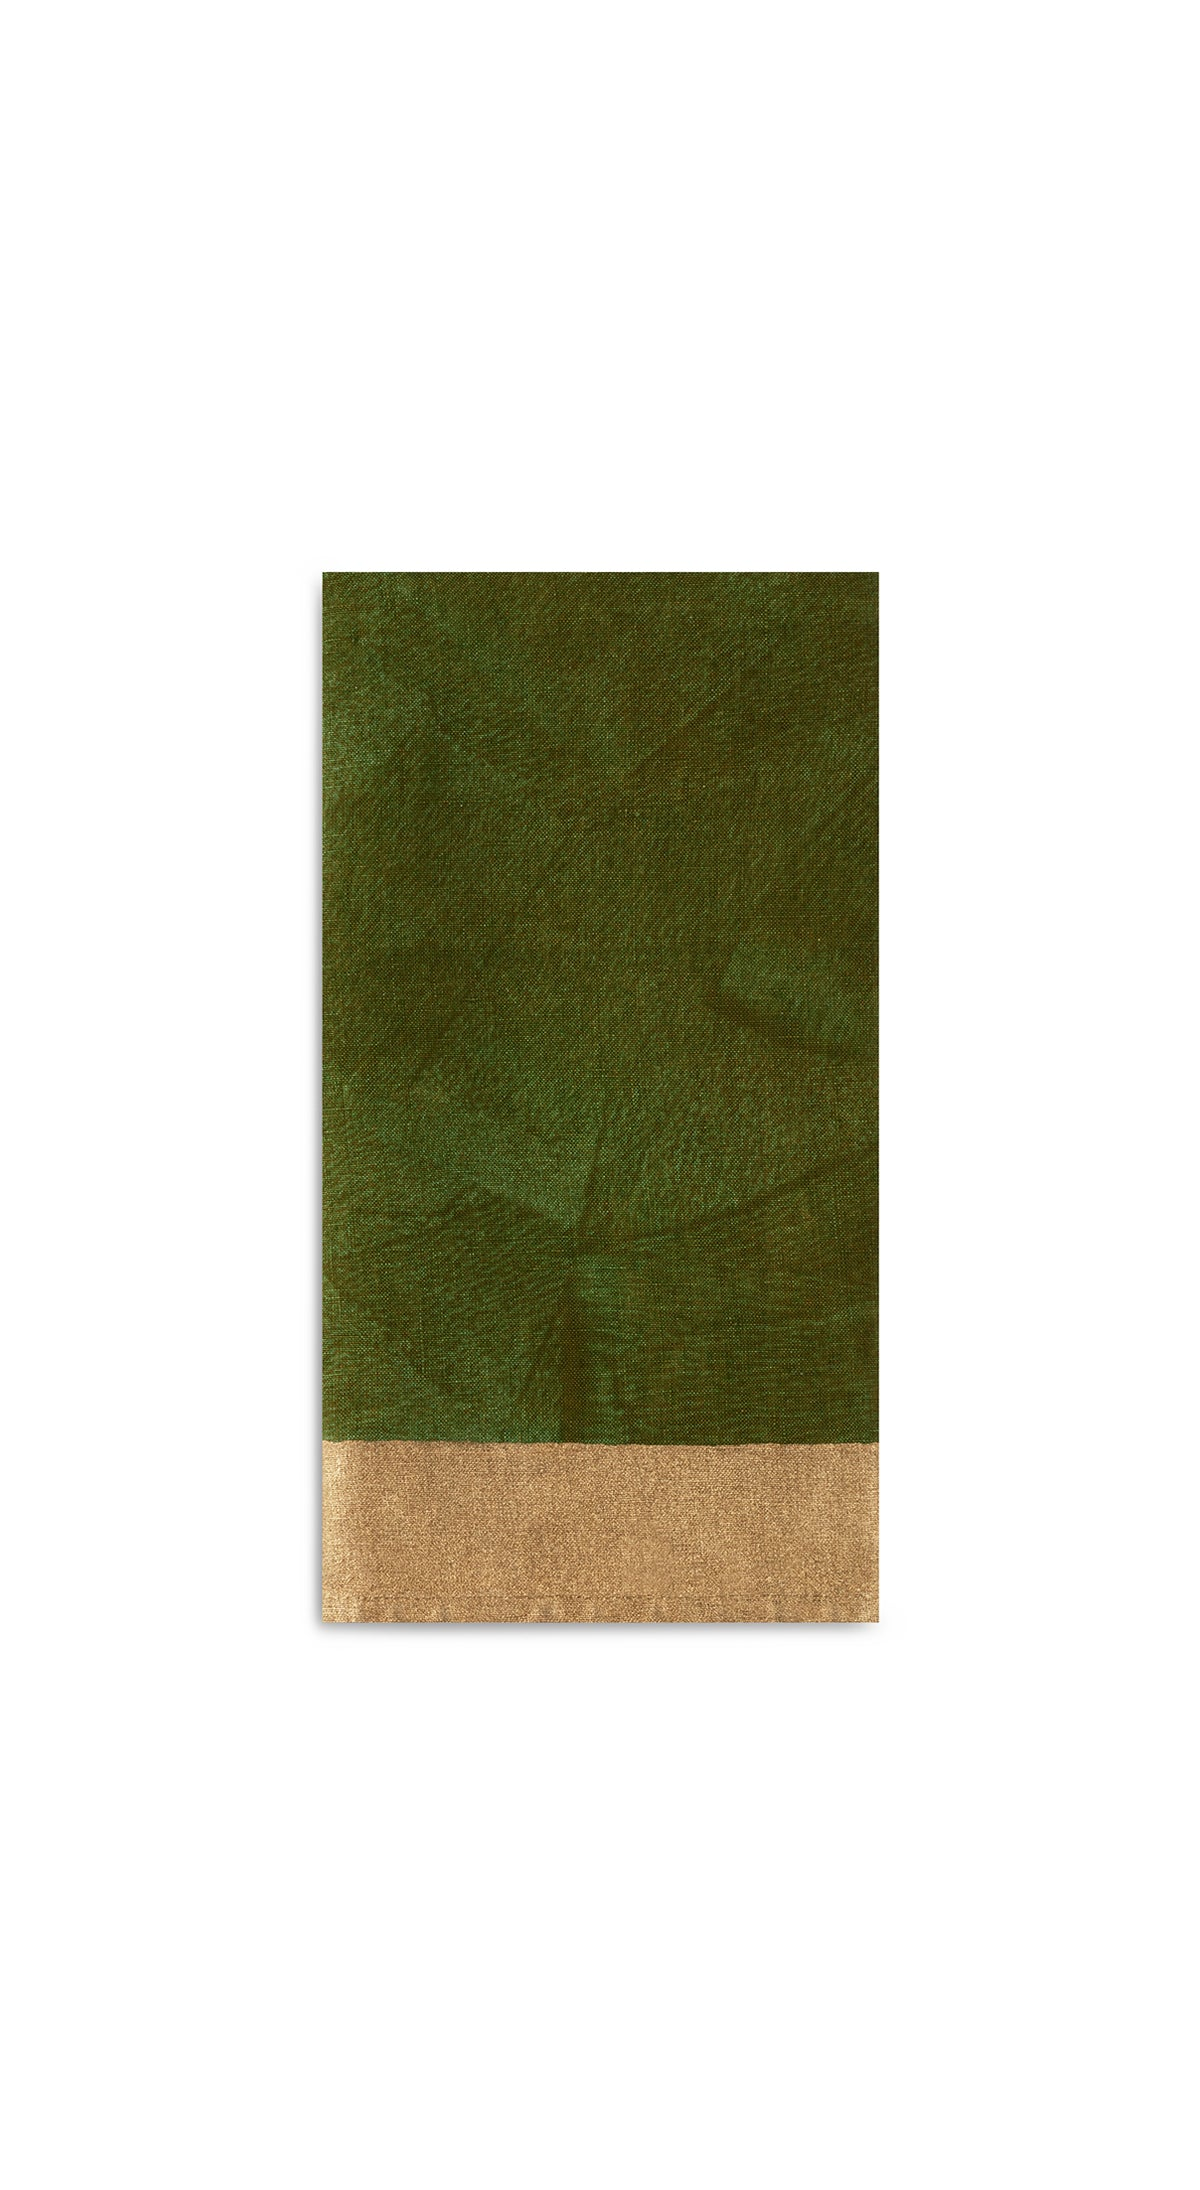 Bronze Edge Linen Napkin in Avocado Green